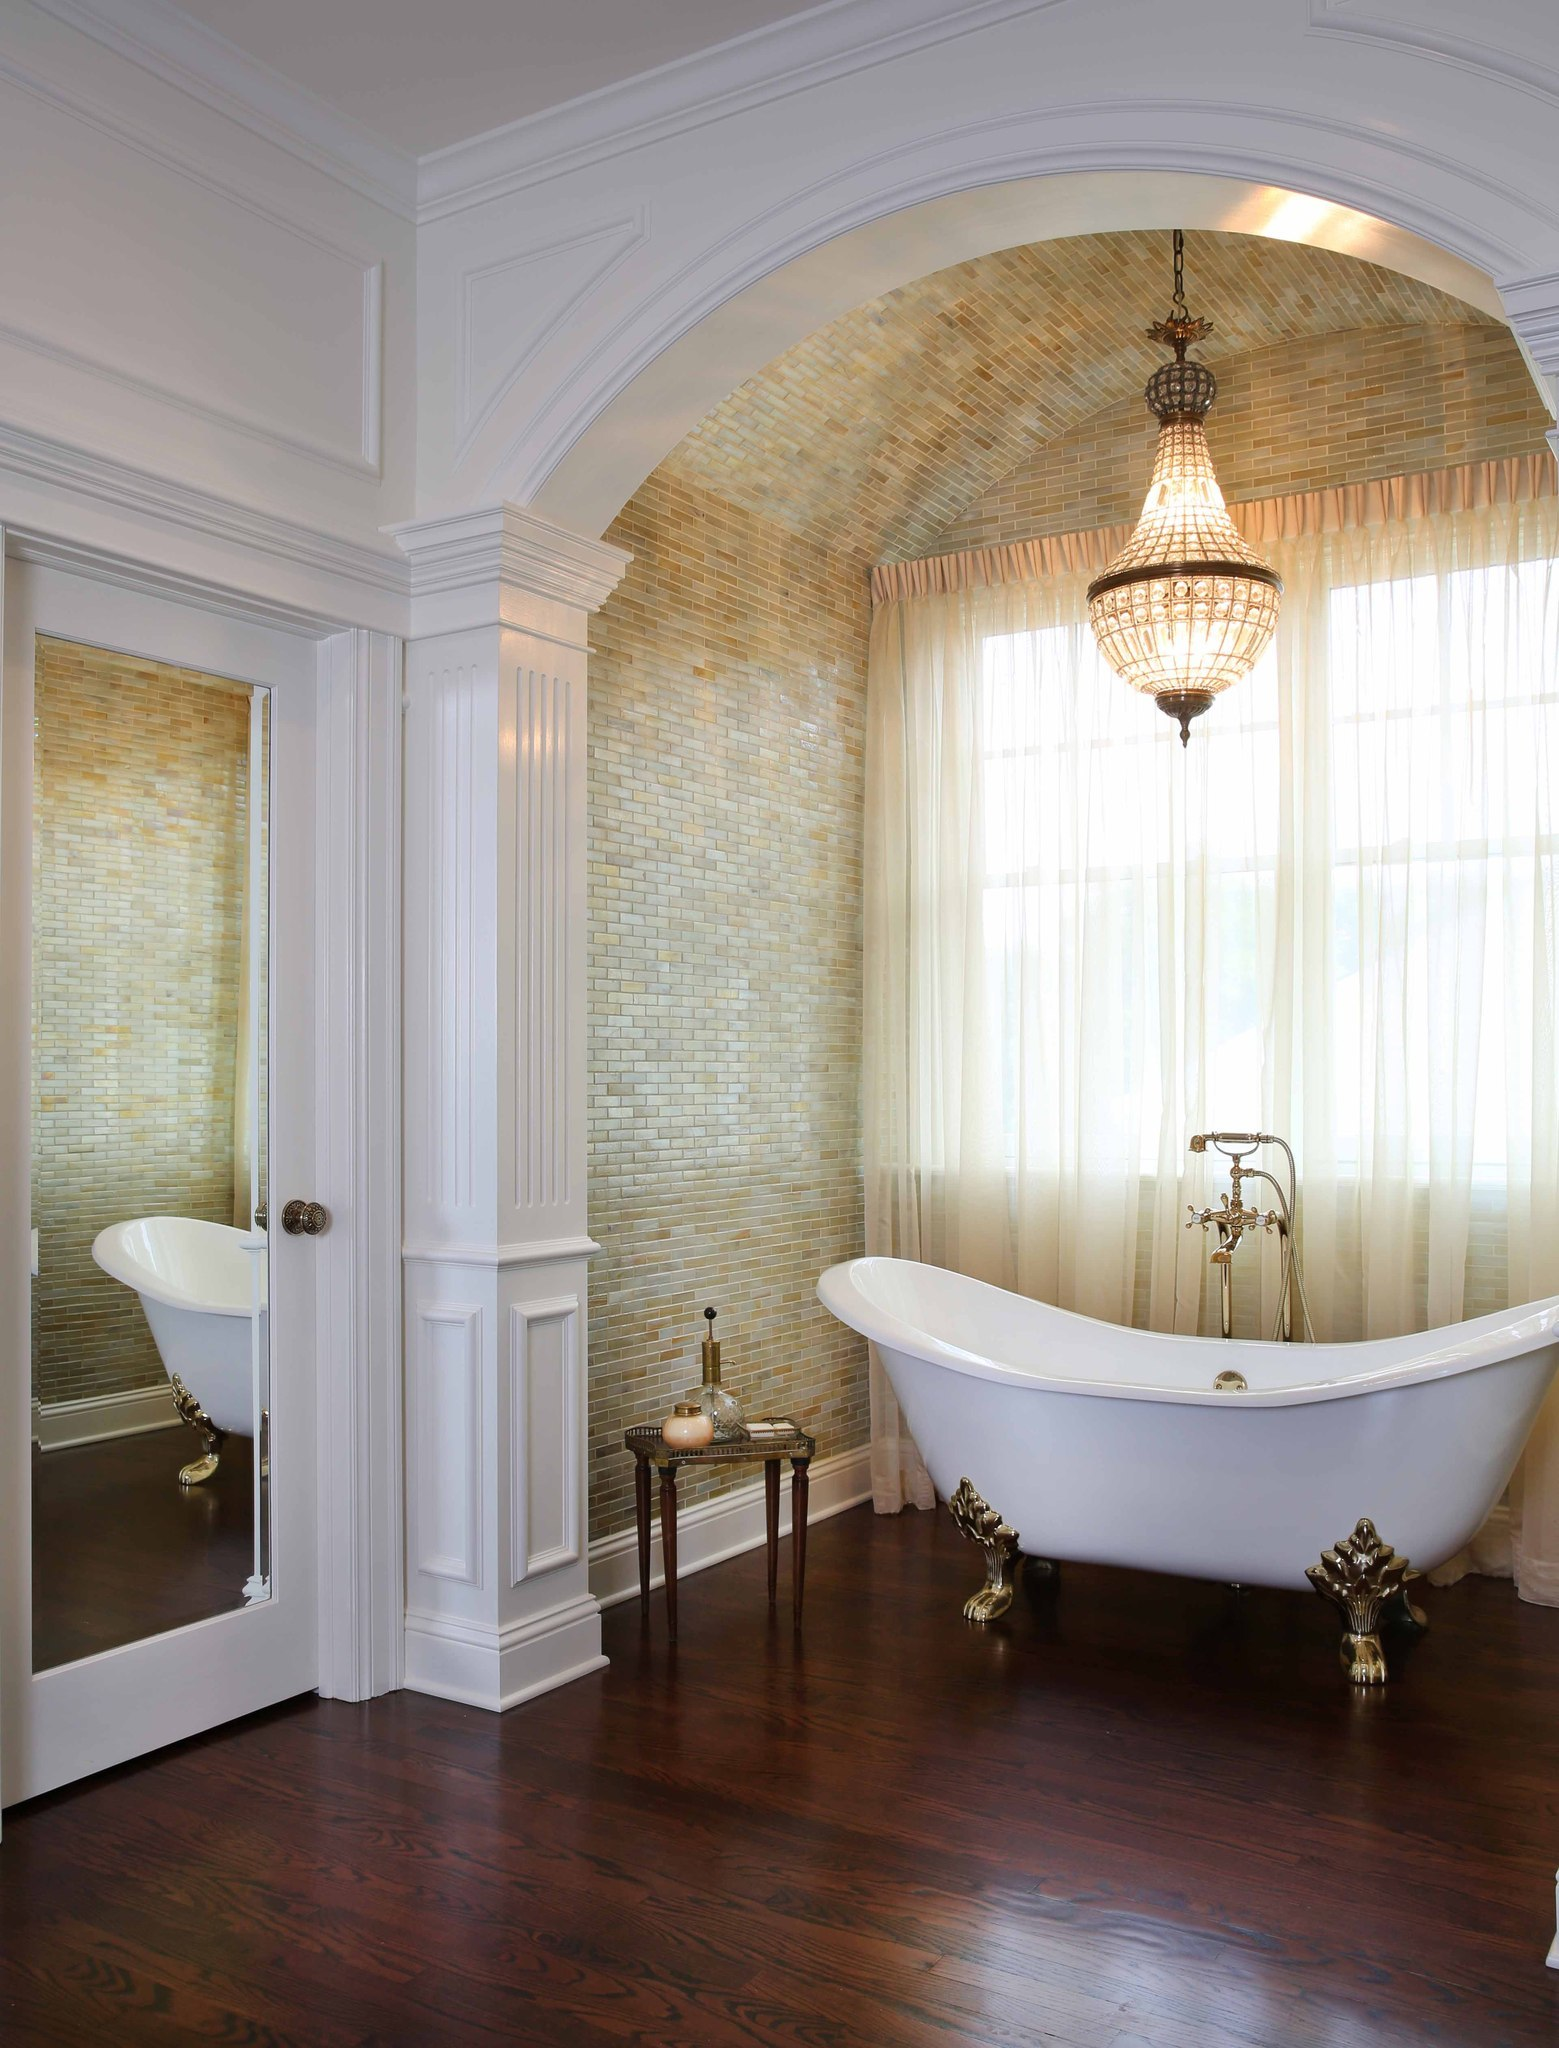 Bathroom Tiles Trends 2014 top 10 bathroom design trends for 2014 - the doings la grange